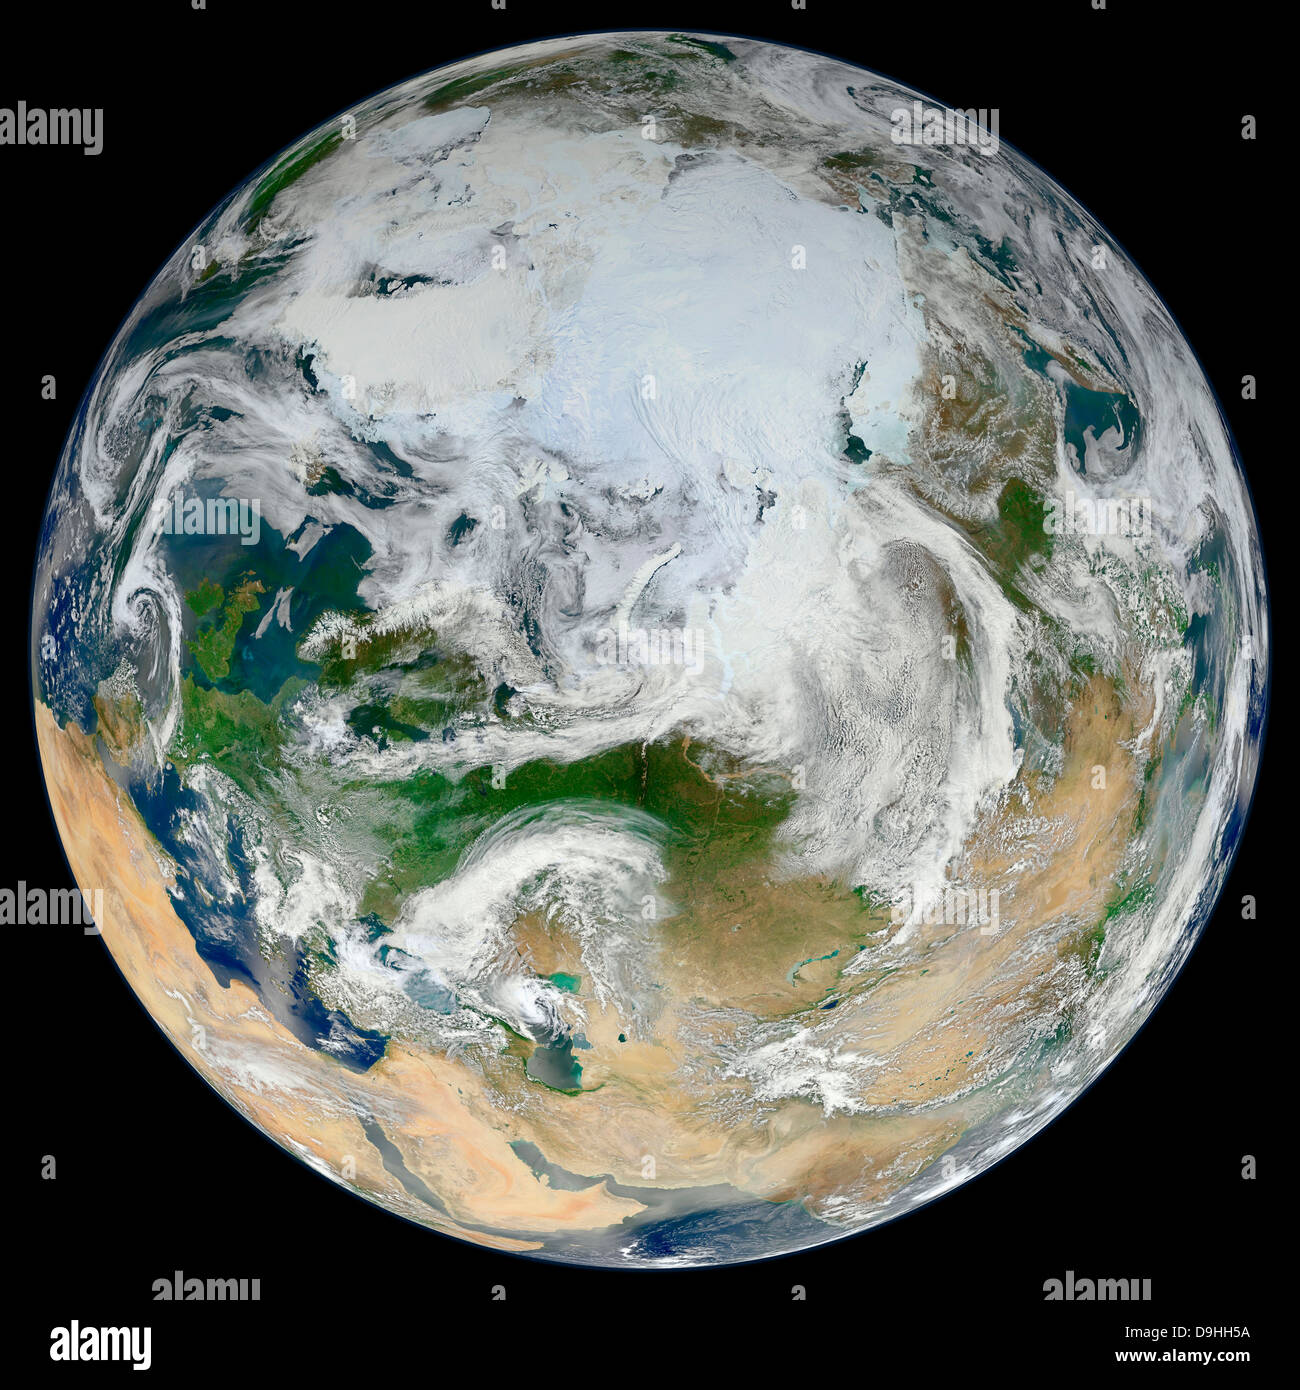 A synthesized view of Earth showing the Arctic, Europe and Asia. - Stock Image